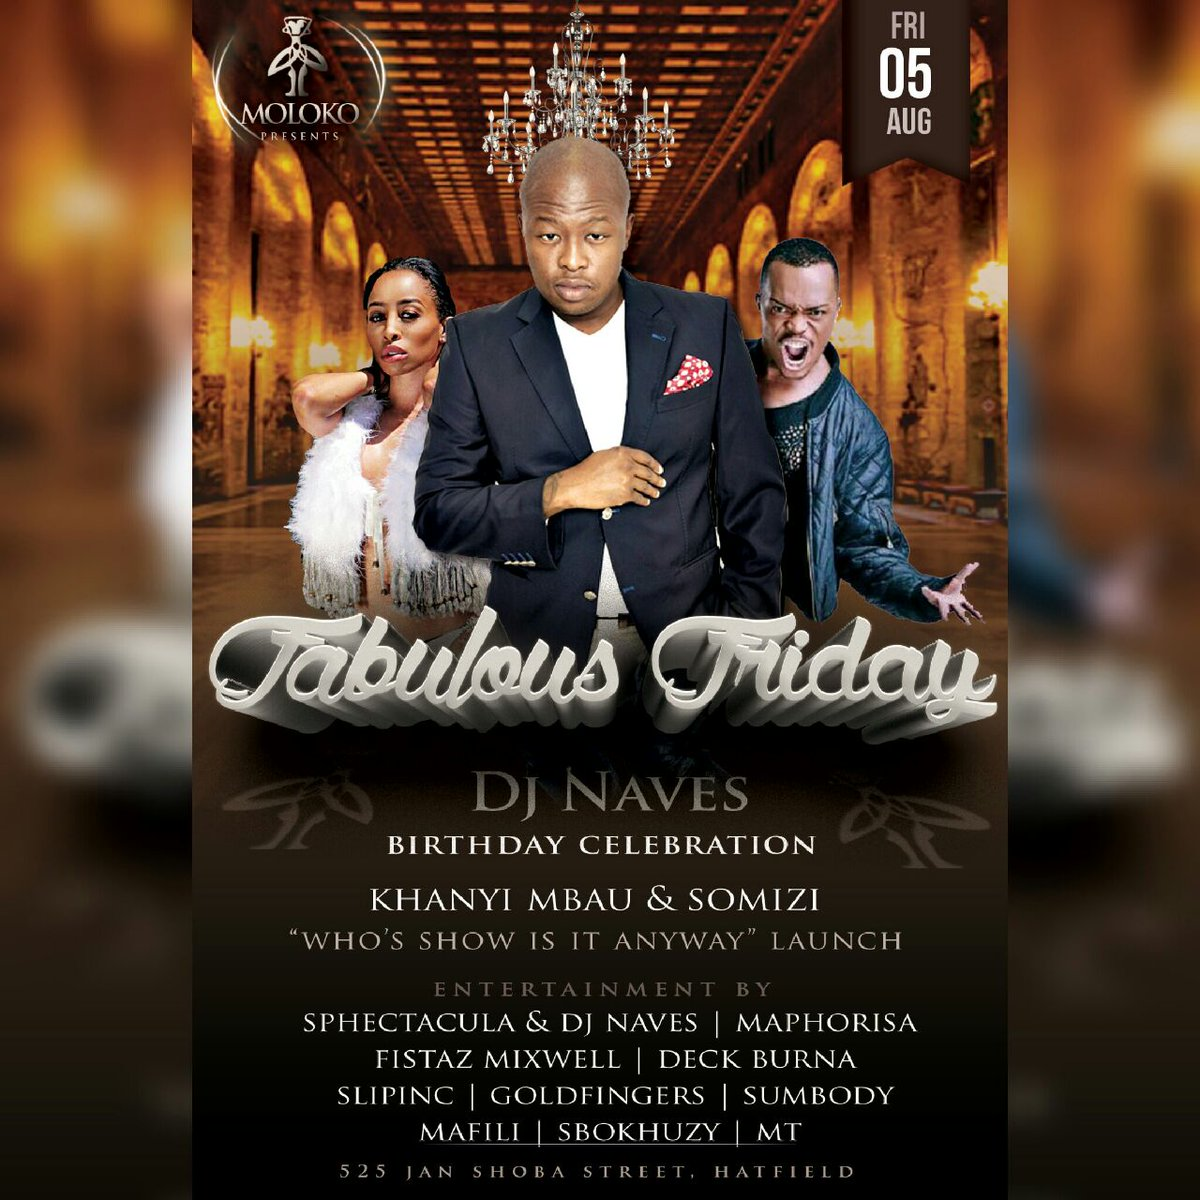 The weekend in pics @molokopretoria ... @DJNAVES & @NomzamoMbatha celebrate their birthdays with us. #WeArePTA